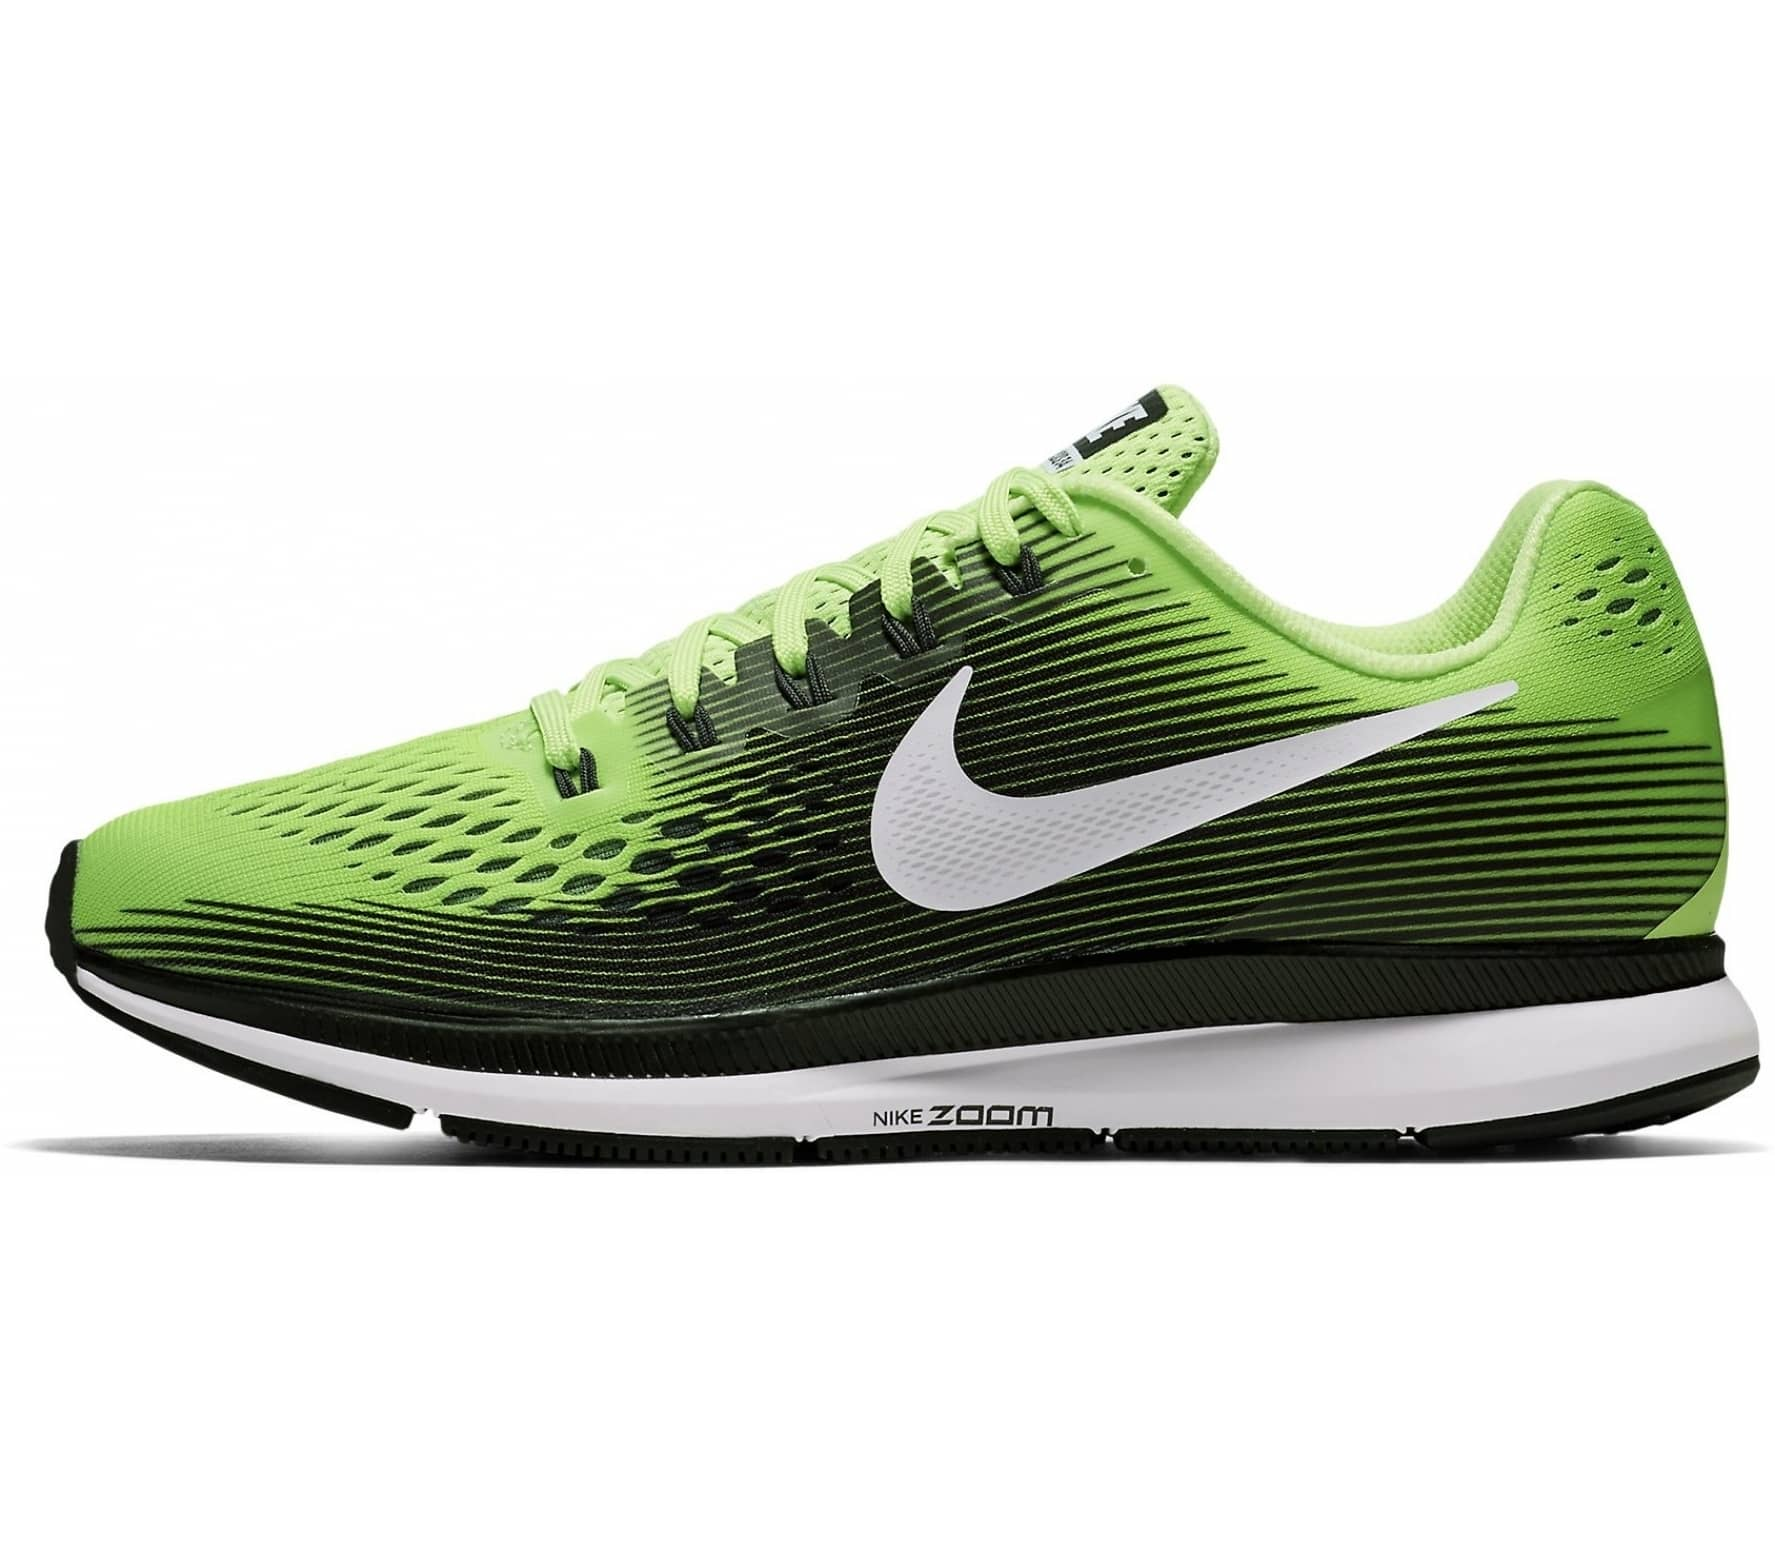 d0f7017cf5c93 ... norway nike air zoom pegasus 34 mens running shoes black green 11803  d8f5c ...